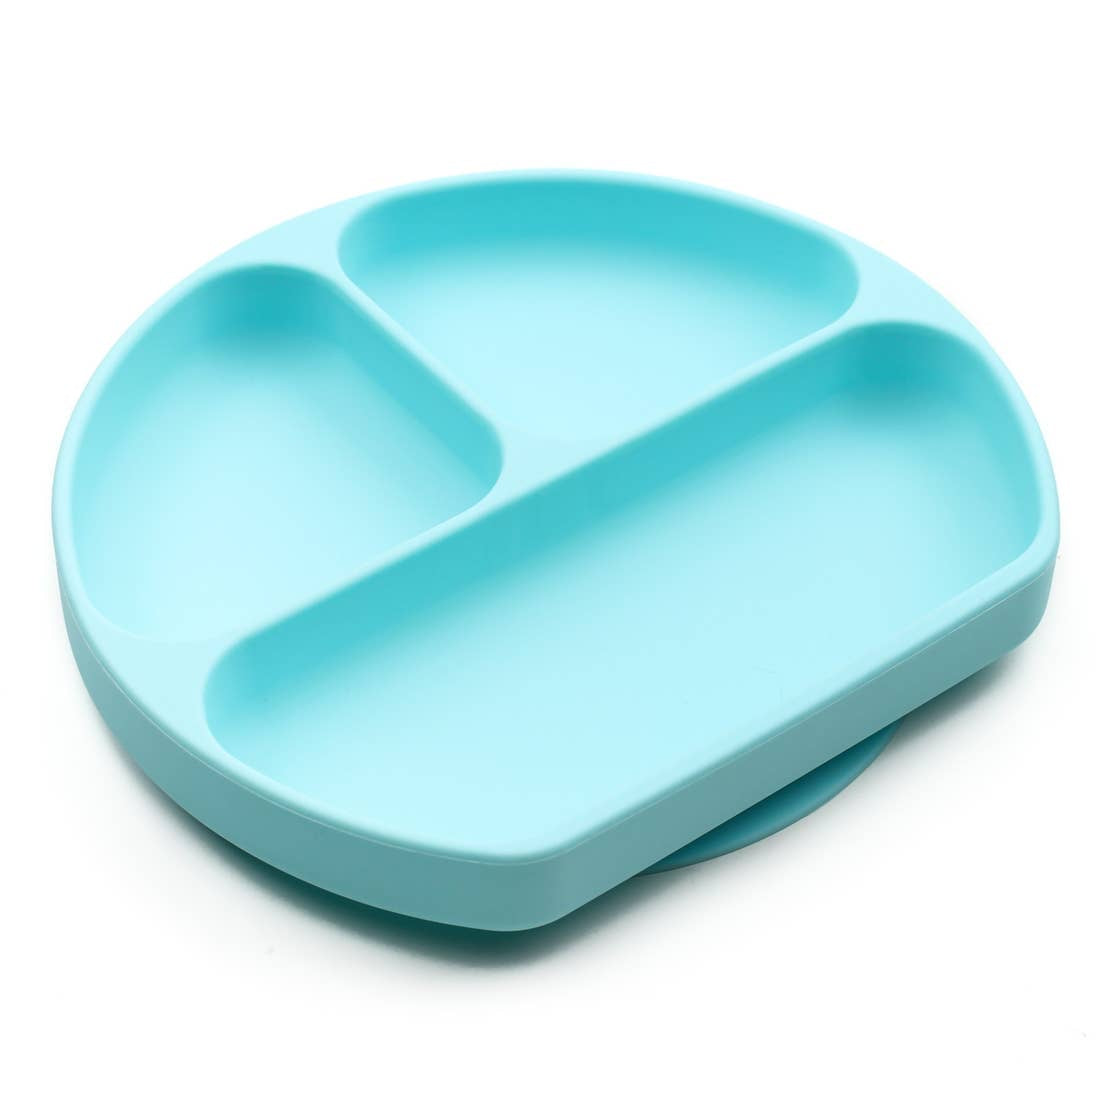 Grip dish blue - Le Bébé Chic Boutique